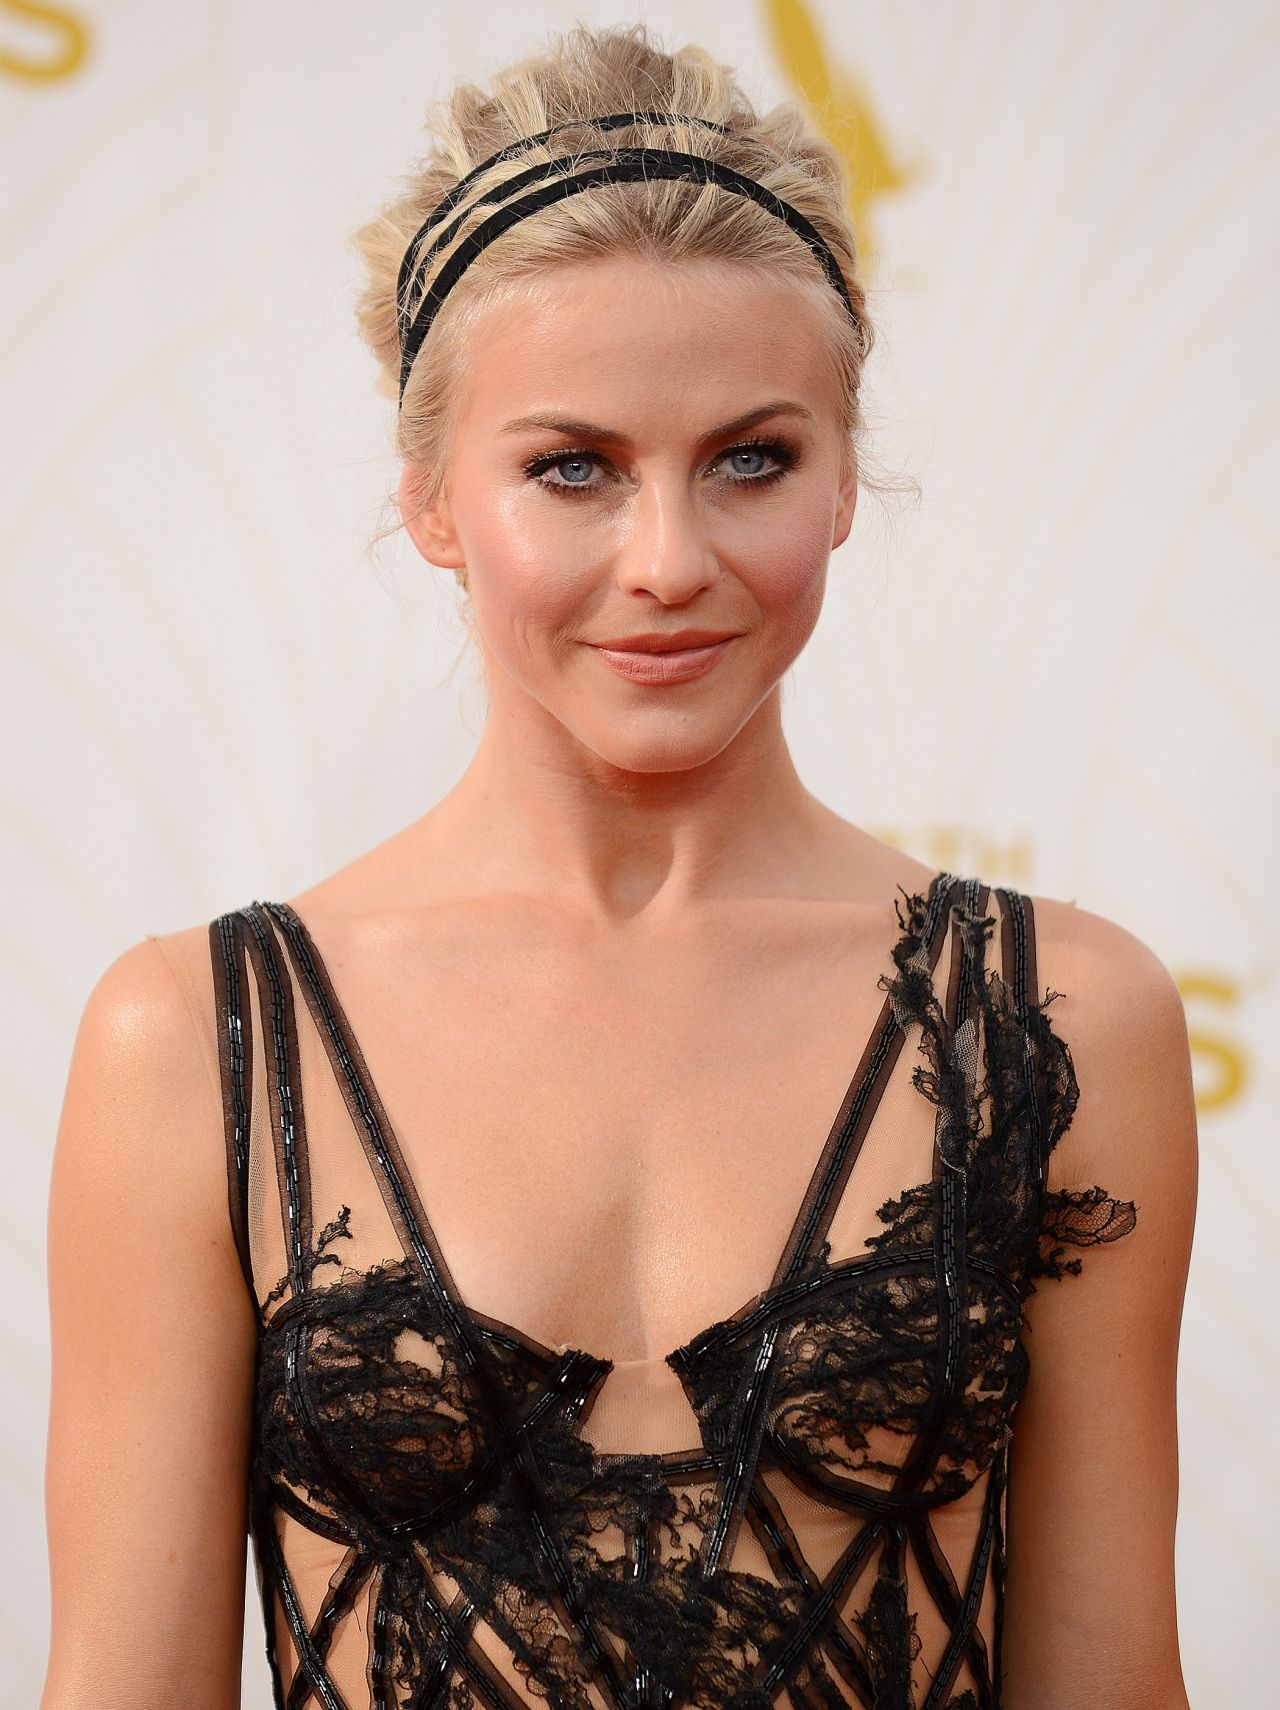 julianne hough gifjulianne hough vk, julianne hough gif, julianne hough harry potter, julianne hough tumblr, julianne hough 2016, julianne hough фильмография, julianne hough kinopoisk, julianne hough site, julianne hough style, julianne hough kris, julianne hough dance, julianne hough gallery, julianne hough fansite, julianne hough bear grylls, julianne hough 2017, julianne hough workout, julianne hough gif tumblr, julianne hough pixie, julianne hough fan, julianne hough 2014